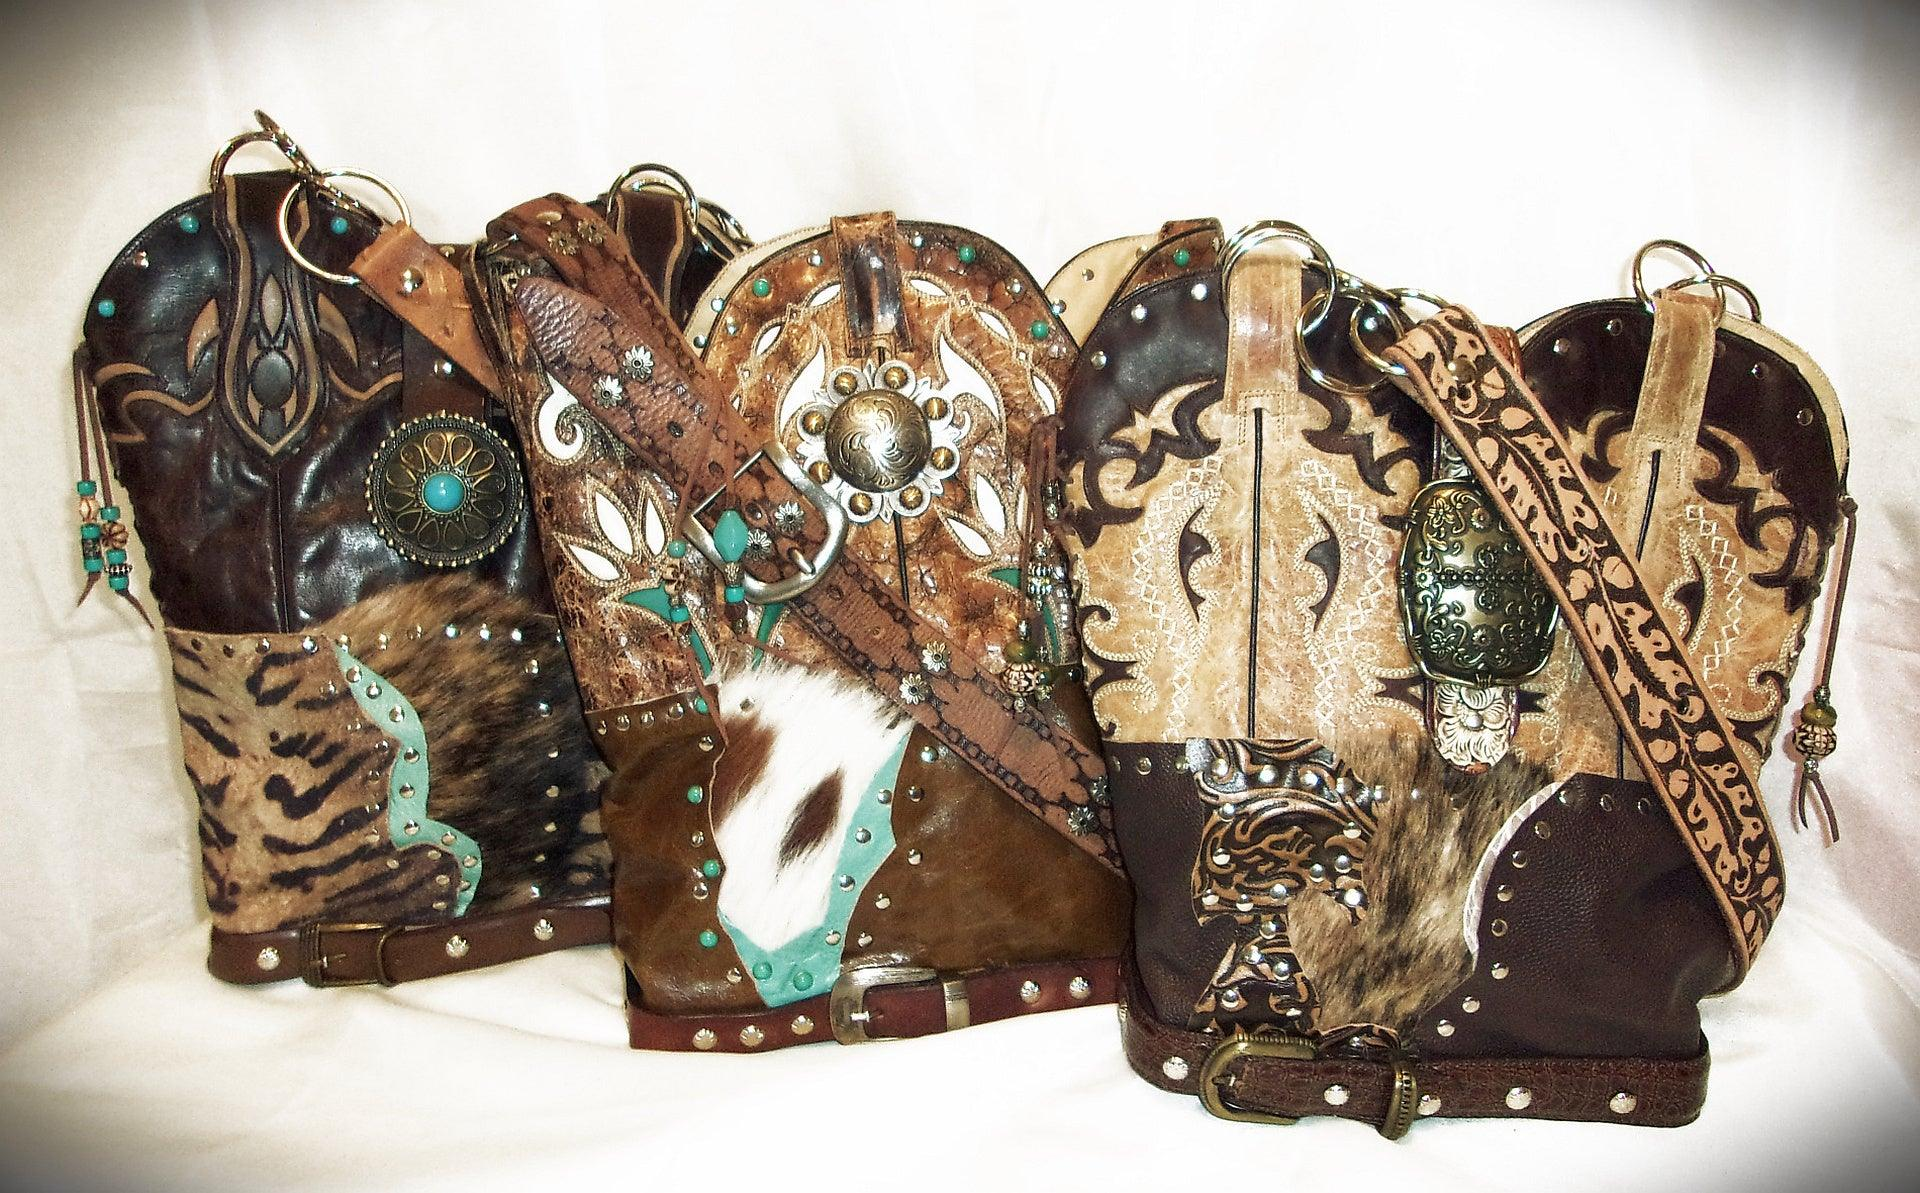 Wine Longhorn Shoulder Bag TS267 - Cowboy Boot Purses by Chris Thompson for Distinctive Western Fashion